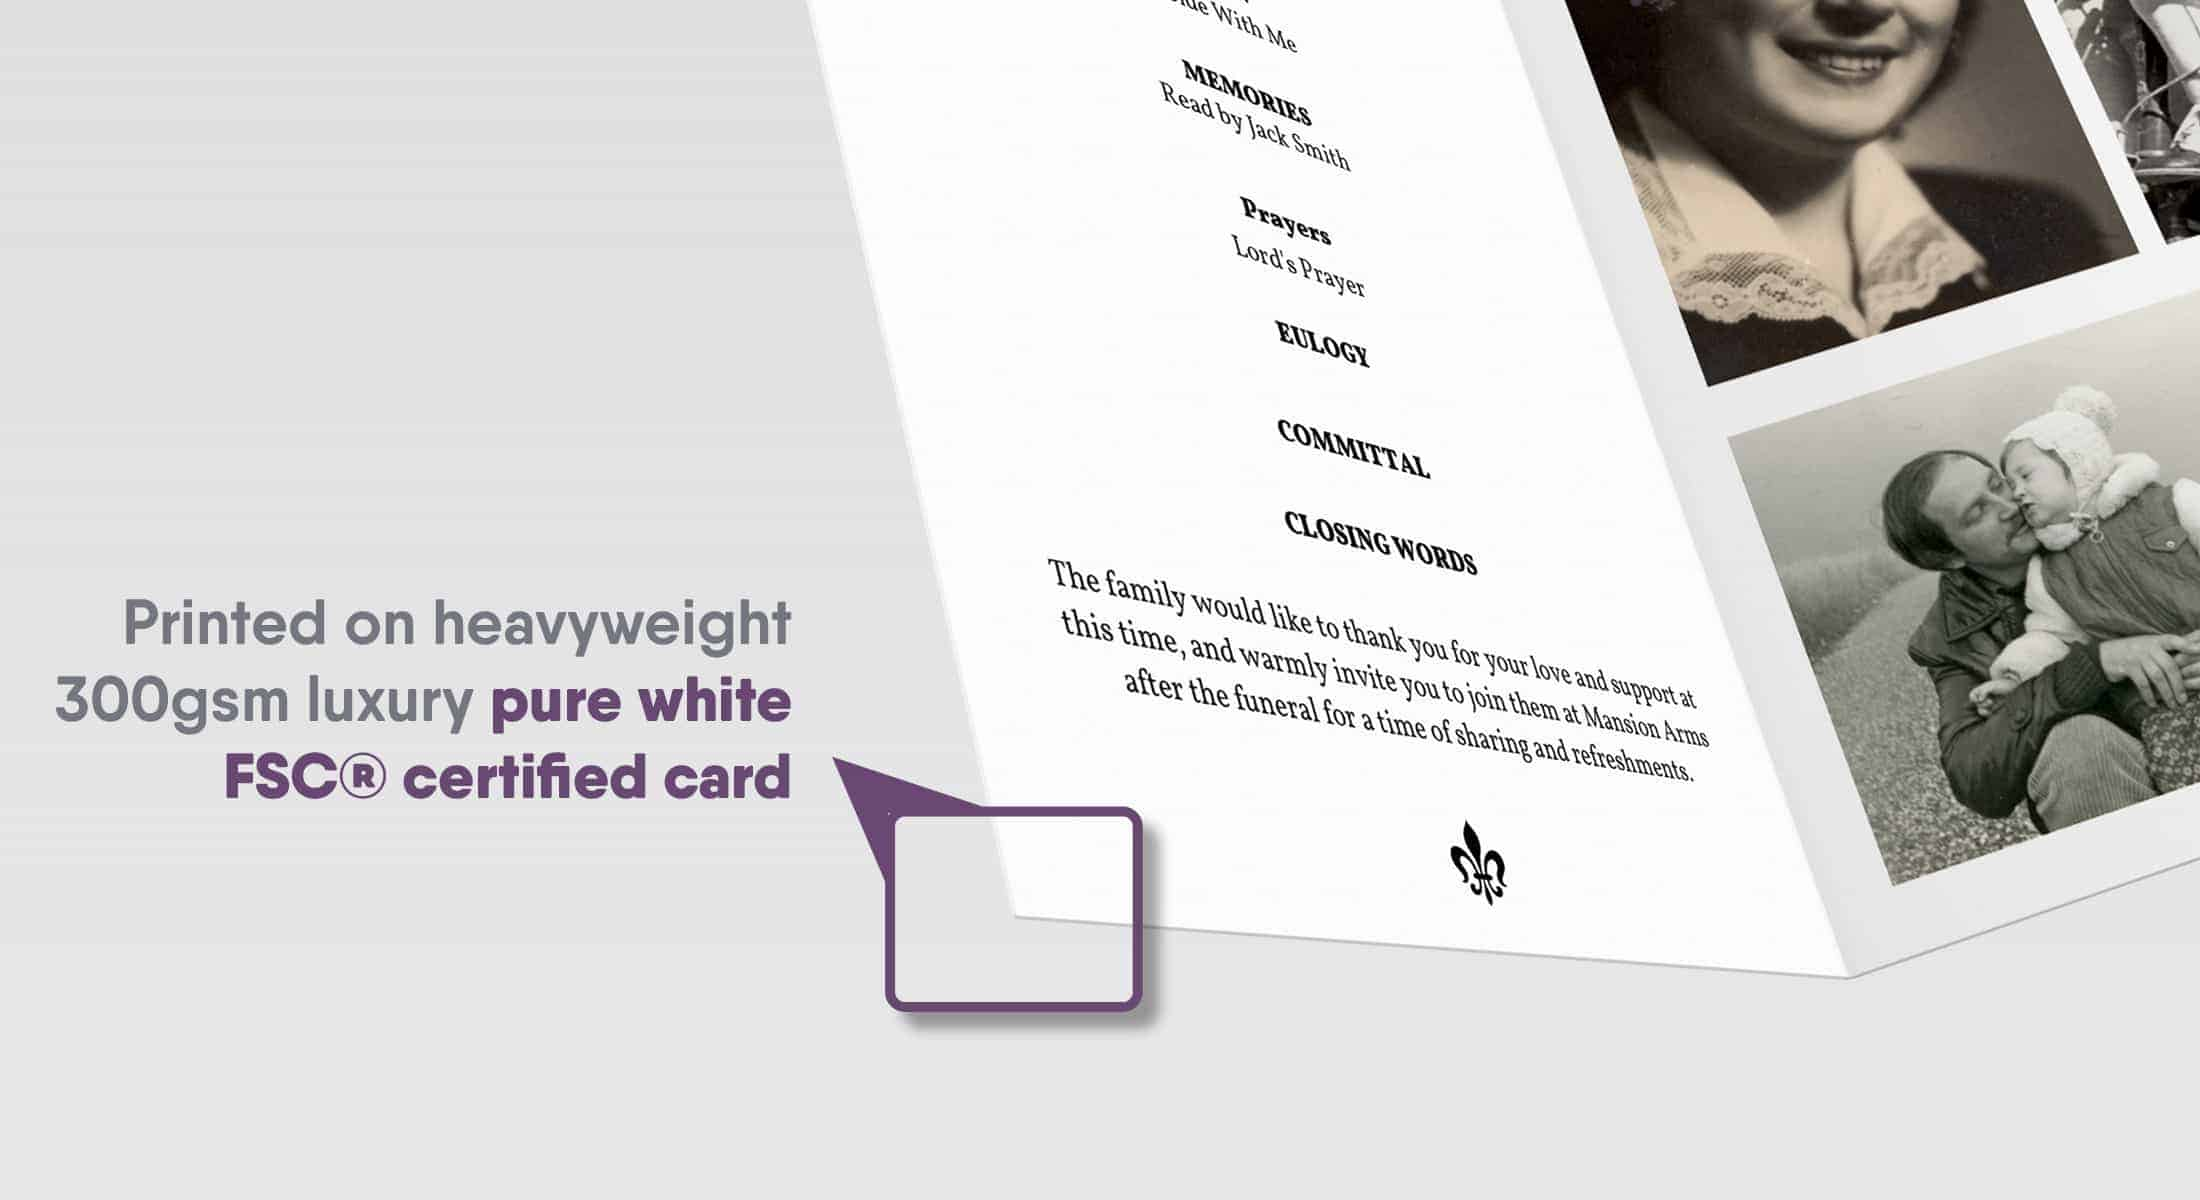 Luxury Heavyweight Card